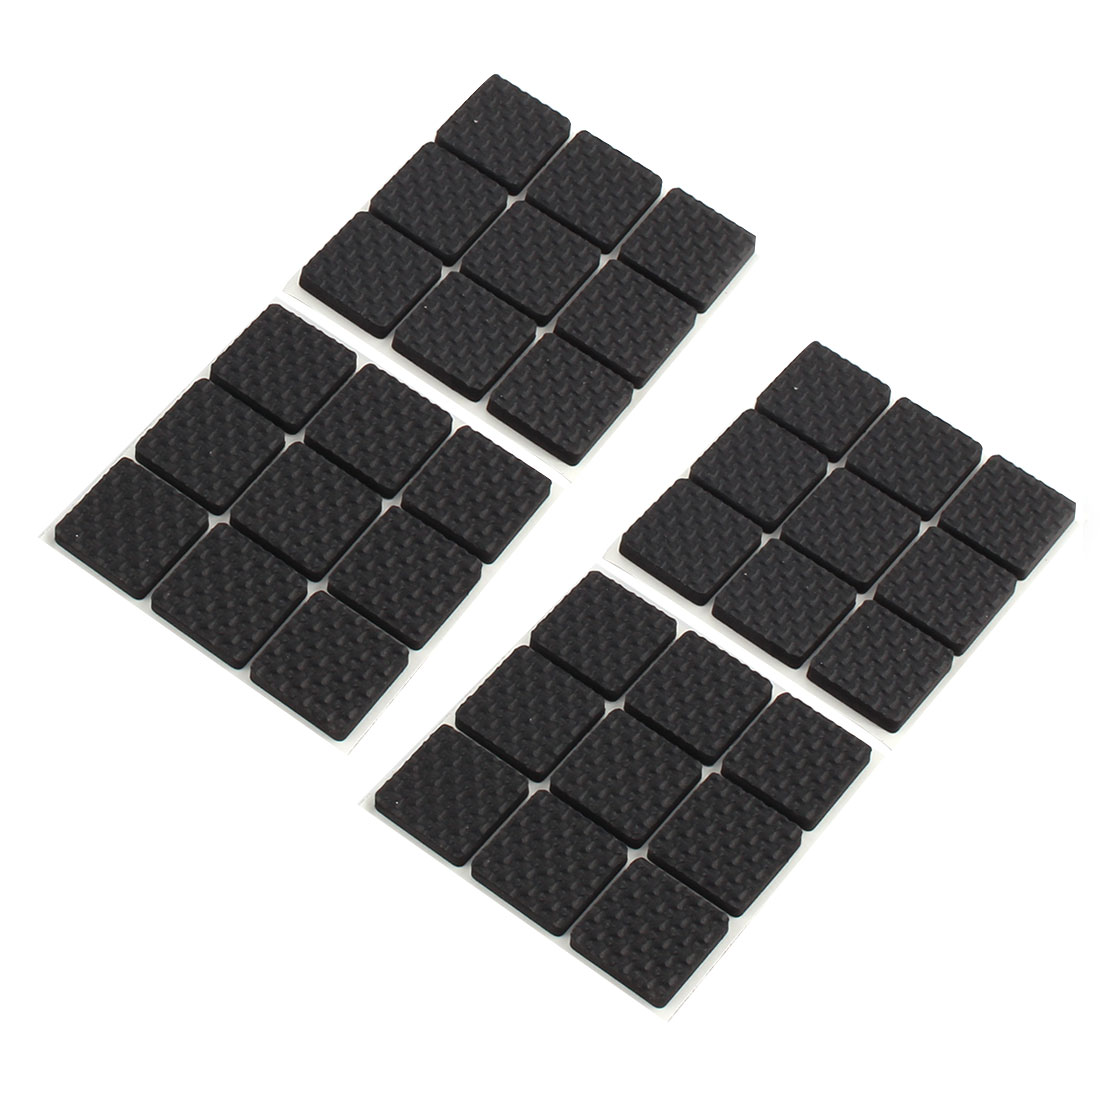 Home EVA Square Table Chair Furniture Protector Cushion Pads Mat 27 x 27mm 36pcs